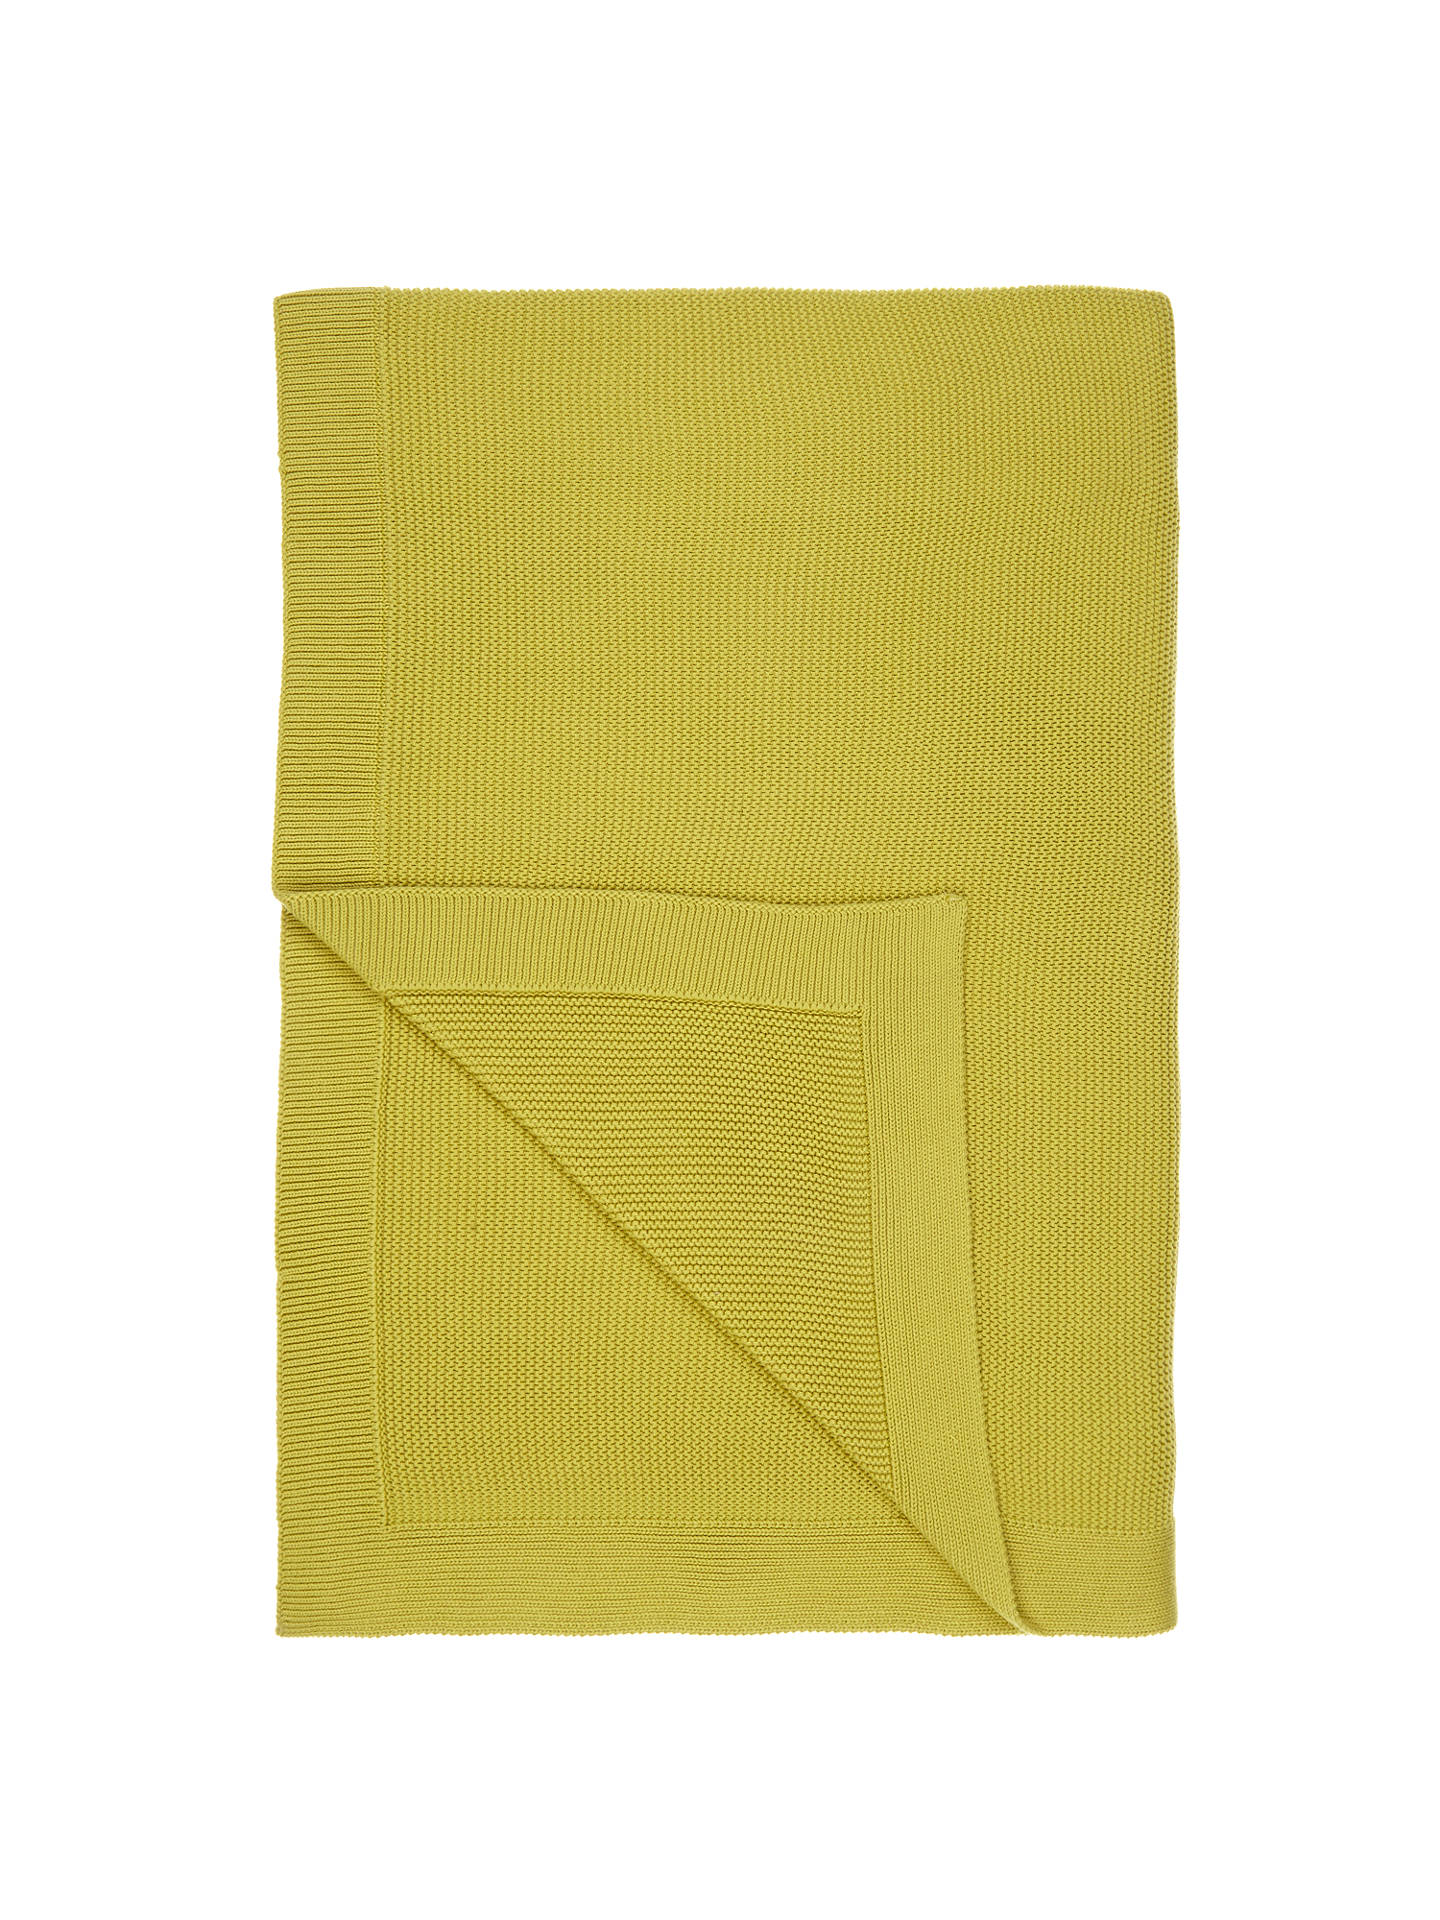 Buy John Lewis & Partners Rye Plain Knit Throw, L200 x W150cm, Green Online at johnlewis.com